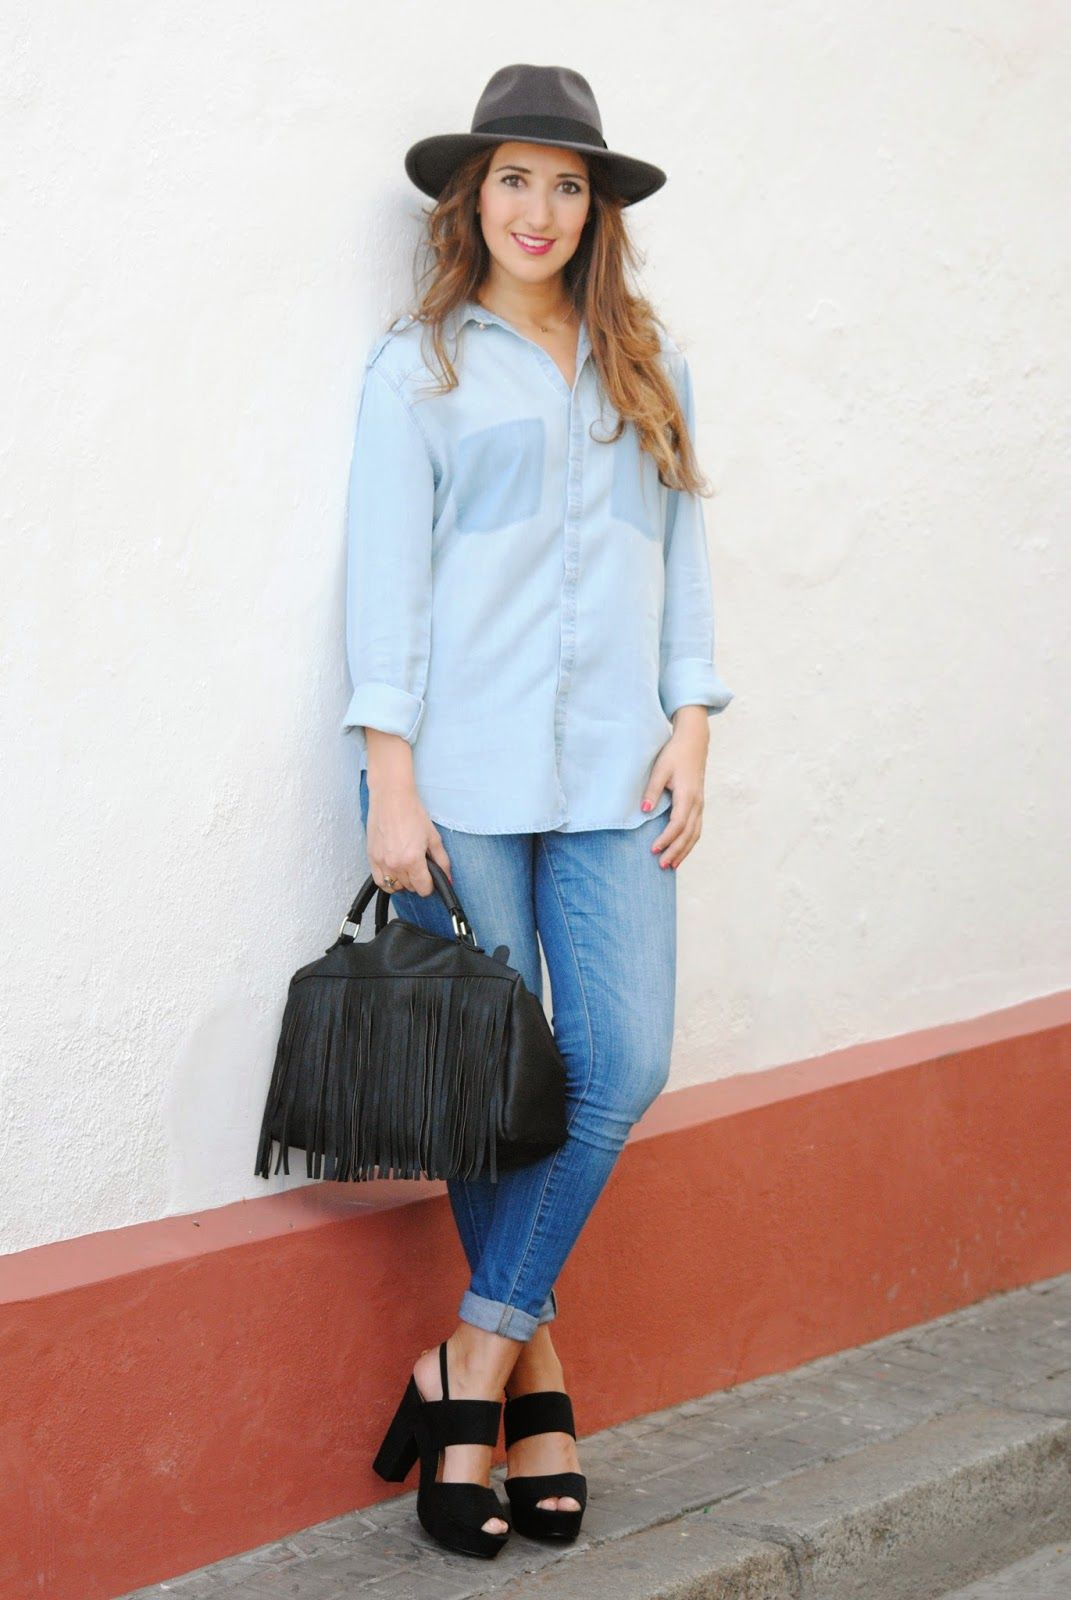 Denim http://www.fashion-south.com/2014/03/denim-denim.html